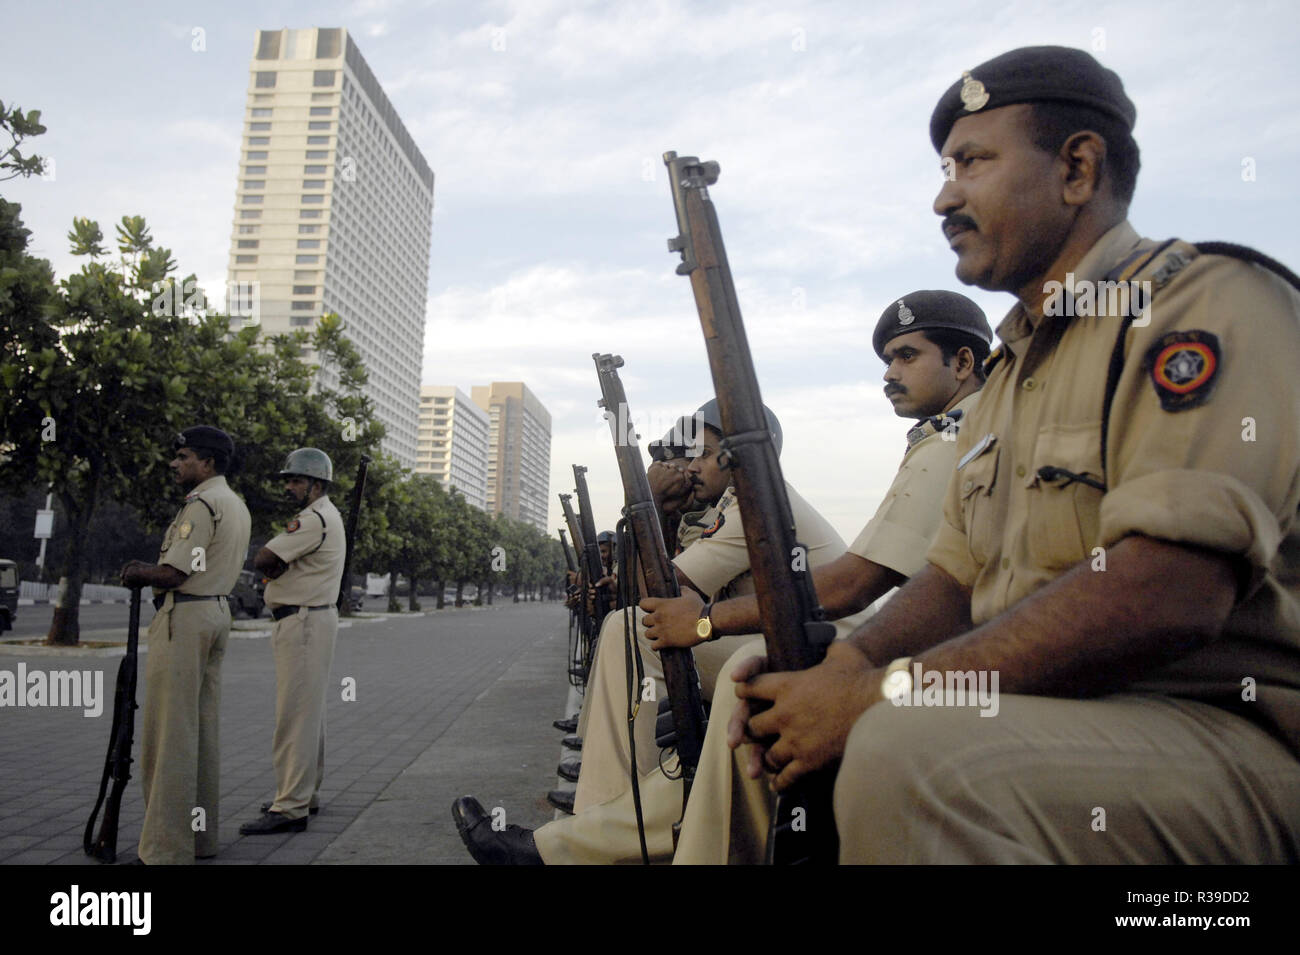 Police waiting to fight Deccan Mujahideen terrorists inside Oberoi Trident Hotel in the background at Nariman Point Mumbai India on 27 /11/2008. Terrorists killed 100 people and wounded more than 200 in a series of coordinated attacks across India?s financial hub Mumbai as Heavily armed gunmen in groups of two to four opened fire with automatic weapons and lobbed grenades in 10 places in south Mumbai, including the five-star Taj and Trident hotels, the city?s main railway terminus, a hospital, a cafe, a pub and a cinema hall. Photo: Dinodia    (c) dpa - Report      usage worldwide - Stock Image